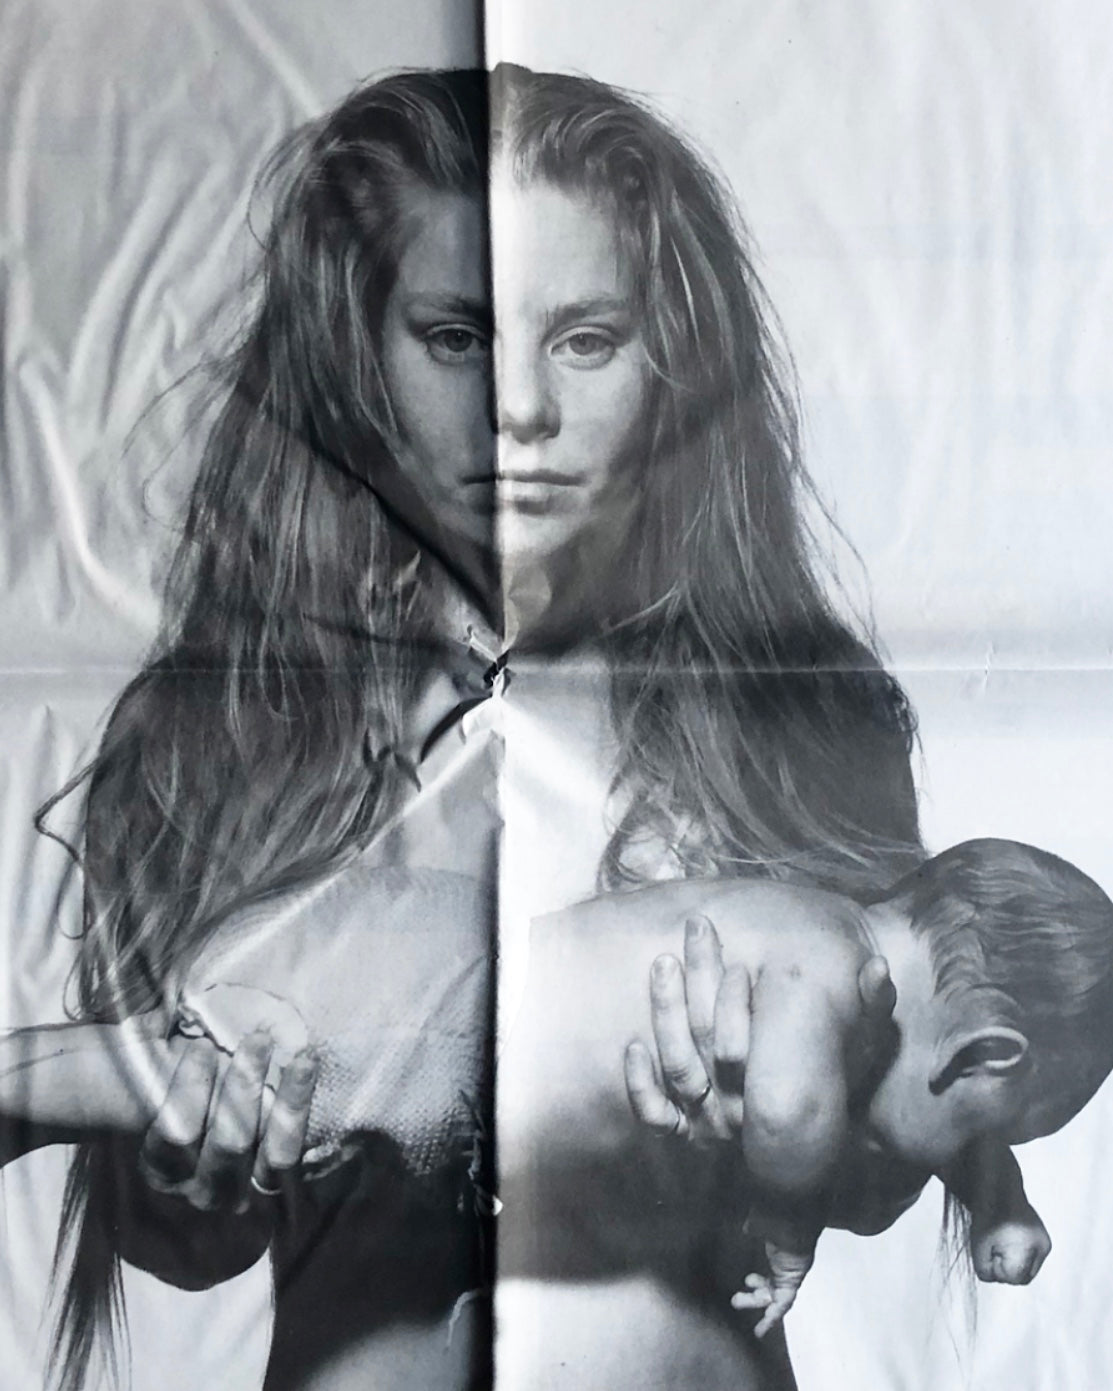 <b>Pretty Much Everything </b><br>Inez van Lamsweerde, Vinoodh Matadin - Janus Books